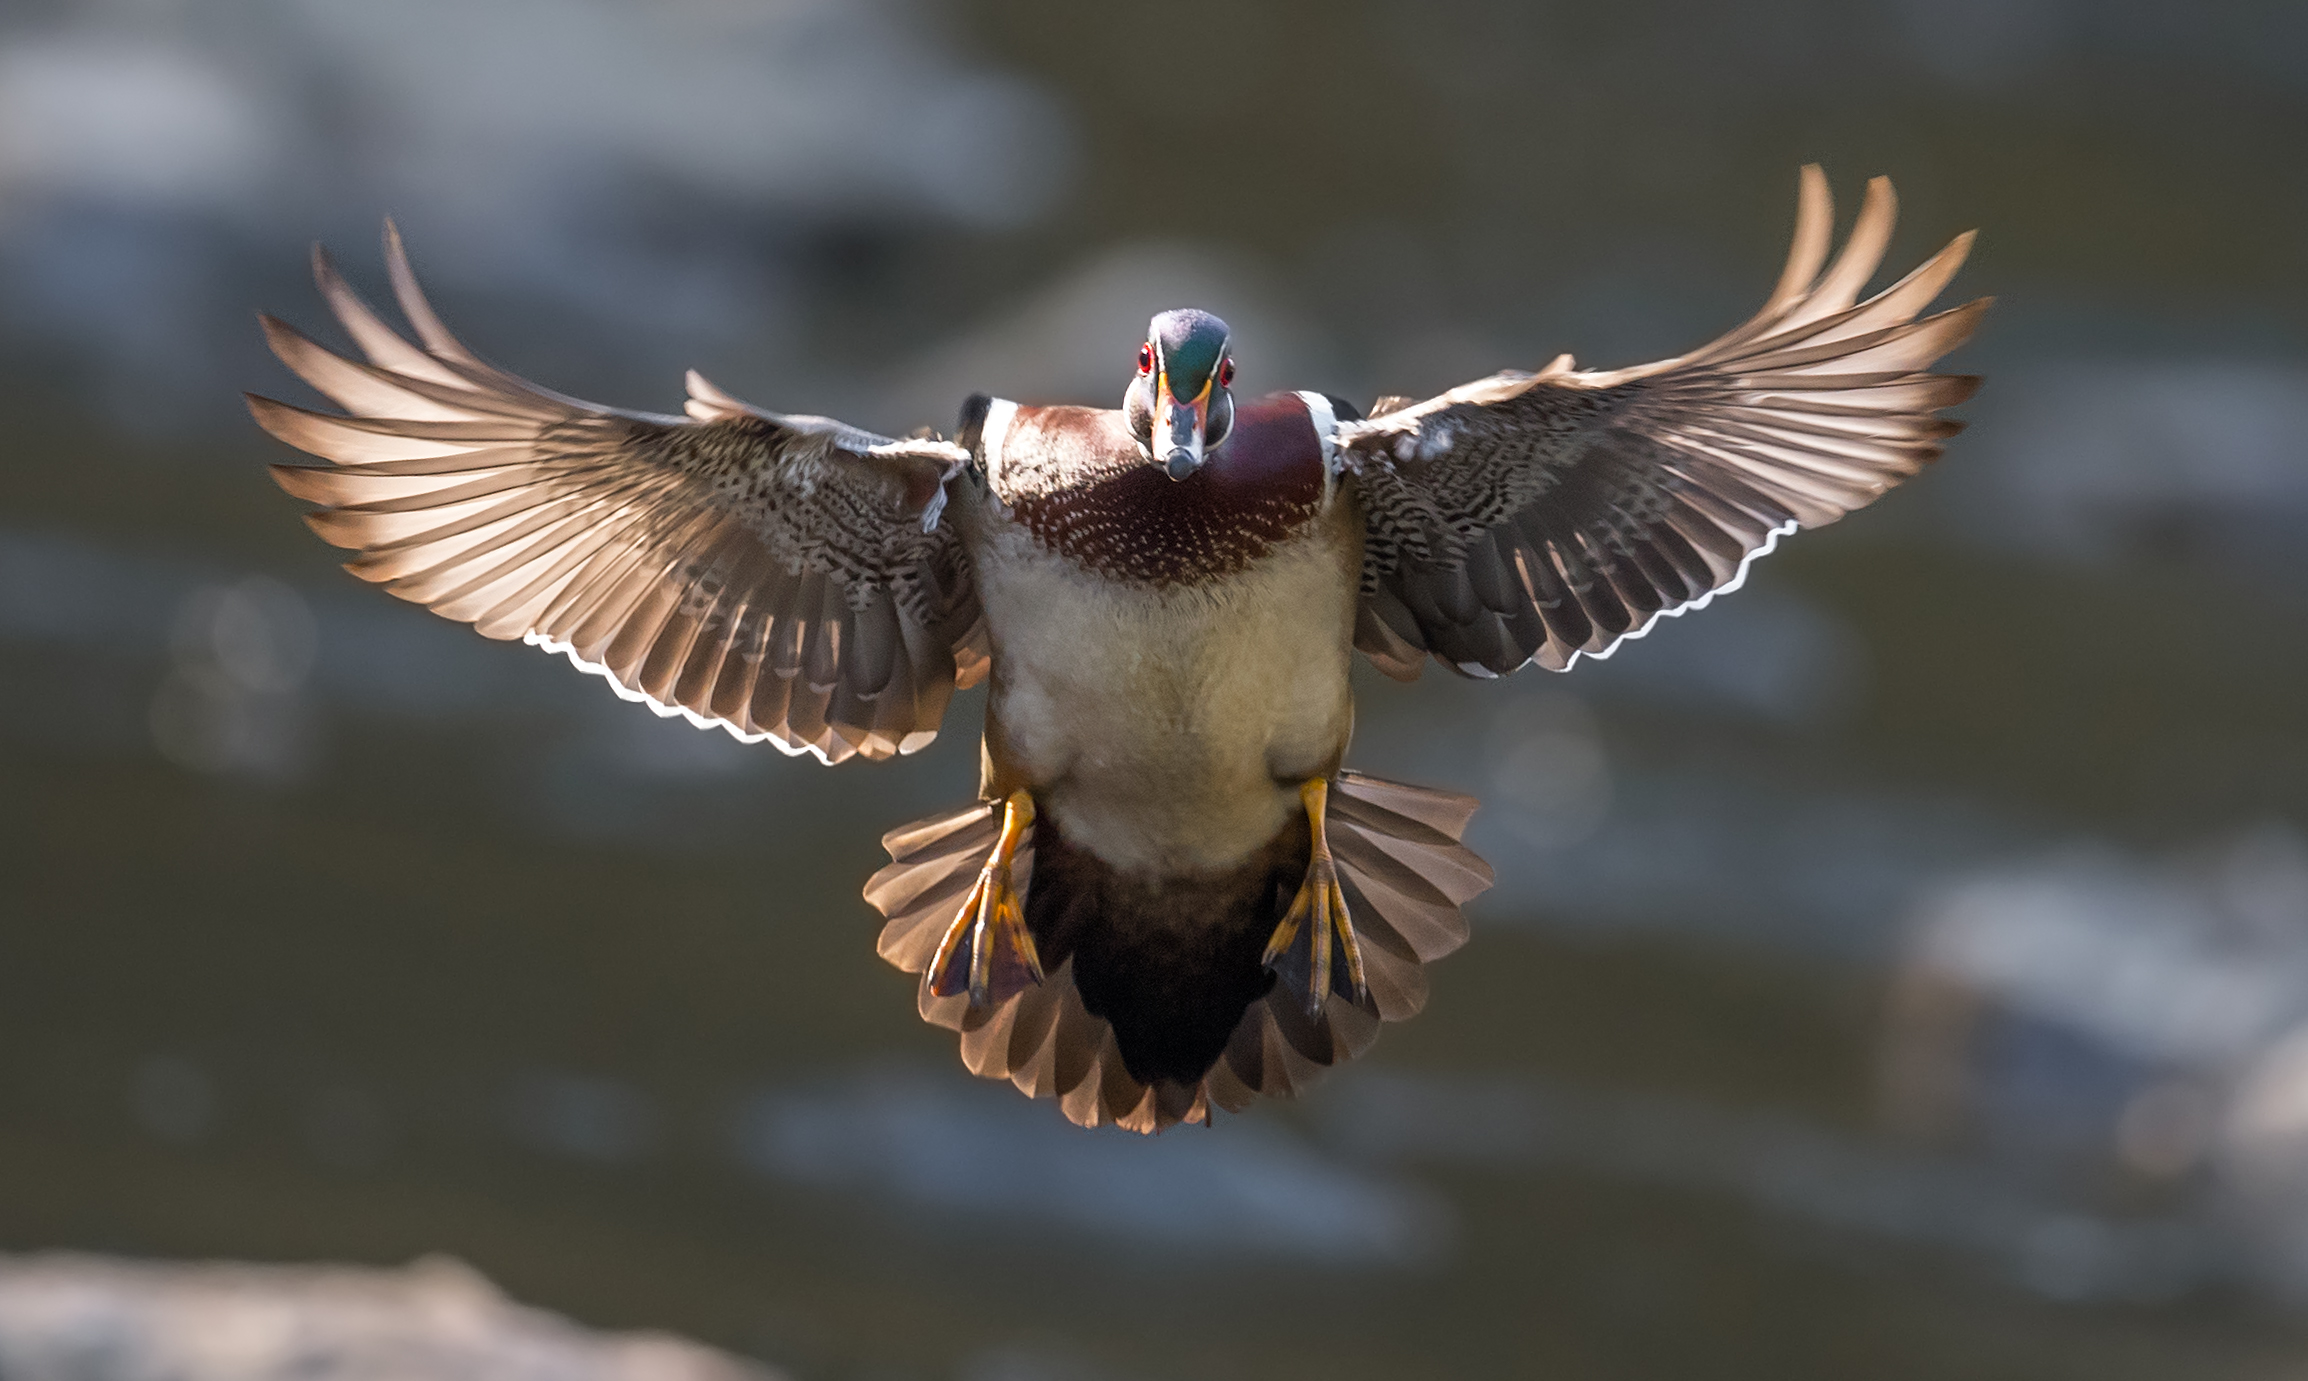 Wood Duck - I have been photographing these wood ducks in Pennsylvania for several years but until this year I had never bothered to try for flight shots. Normally I am set up sitting in the water with my camera just above the water's surface which makes it very difficult to track these ducks in flight. They are very fast and don't often provide good opportunities for flight shots. On this day I decided I would change that and forced myself to spend the day only tracking them in flight. After a while one male duck finally cooperated for me producing this image. I used a single autofocus point as there are many trees in the background that often will force the camera's focus off of the bird when using several focus points.Camera settings: Nikon D5 & 600mm f4 VR lens: Manual Mode:1/2500, f7.1, ISO 2500.